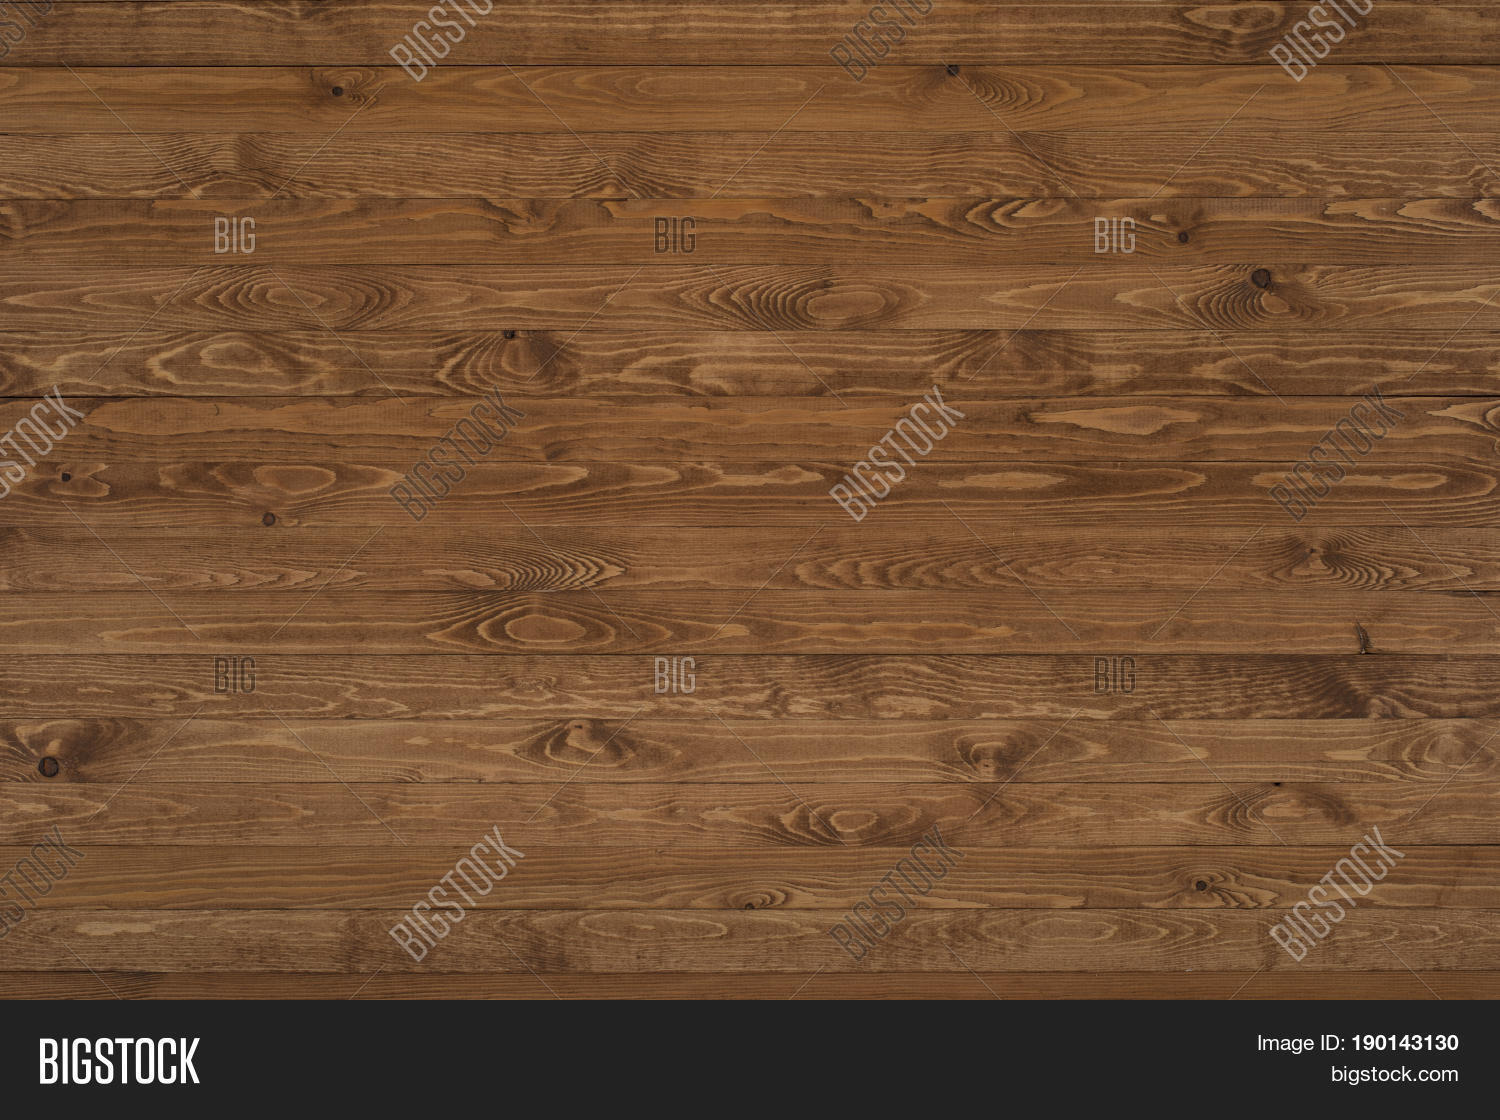 Old vintage white natural wood or wooden texture background or - Wooden Texture Surface With Old Natural Wooden Pattern Grunge Surface Wooden Texture Top View